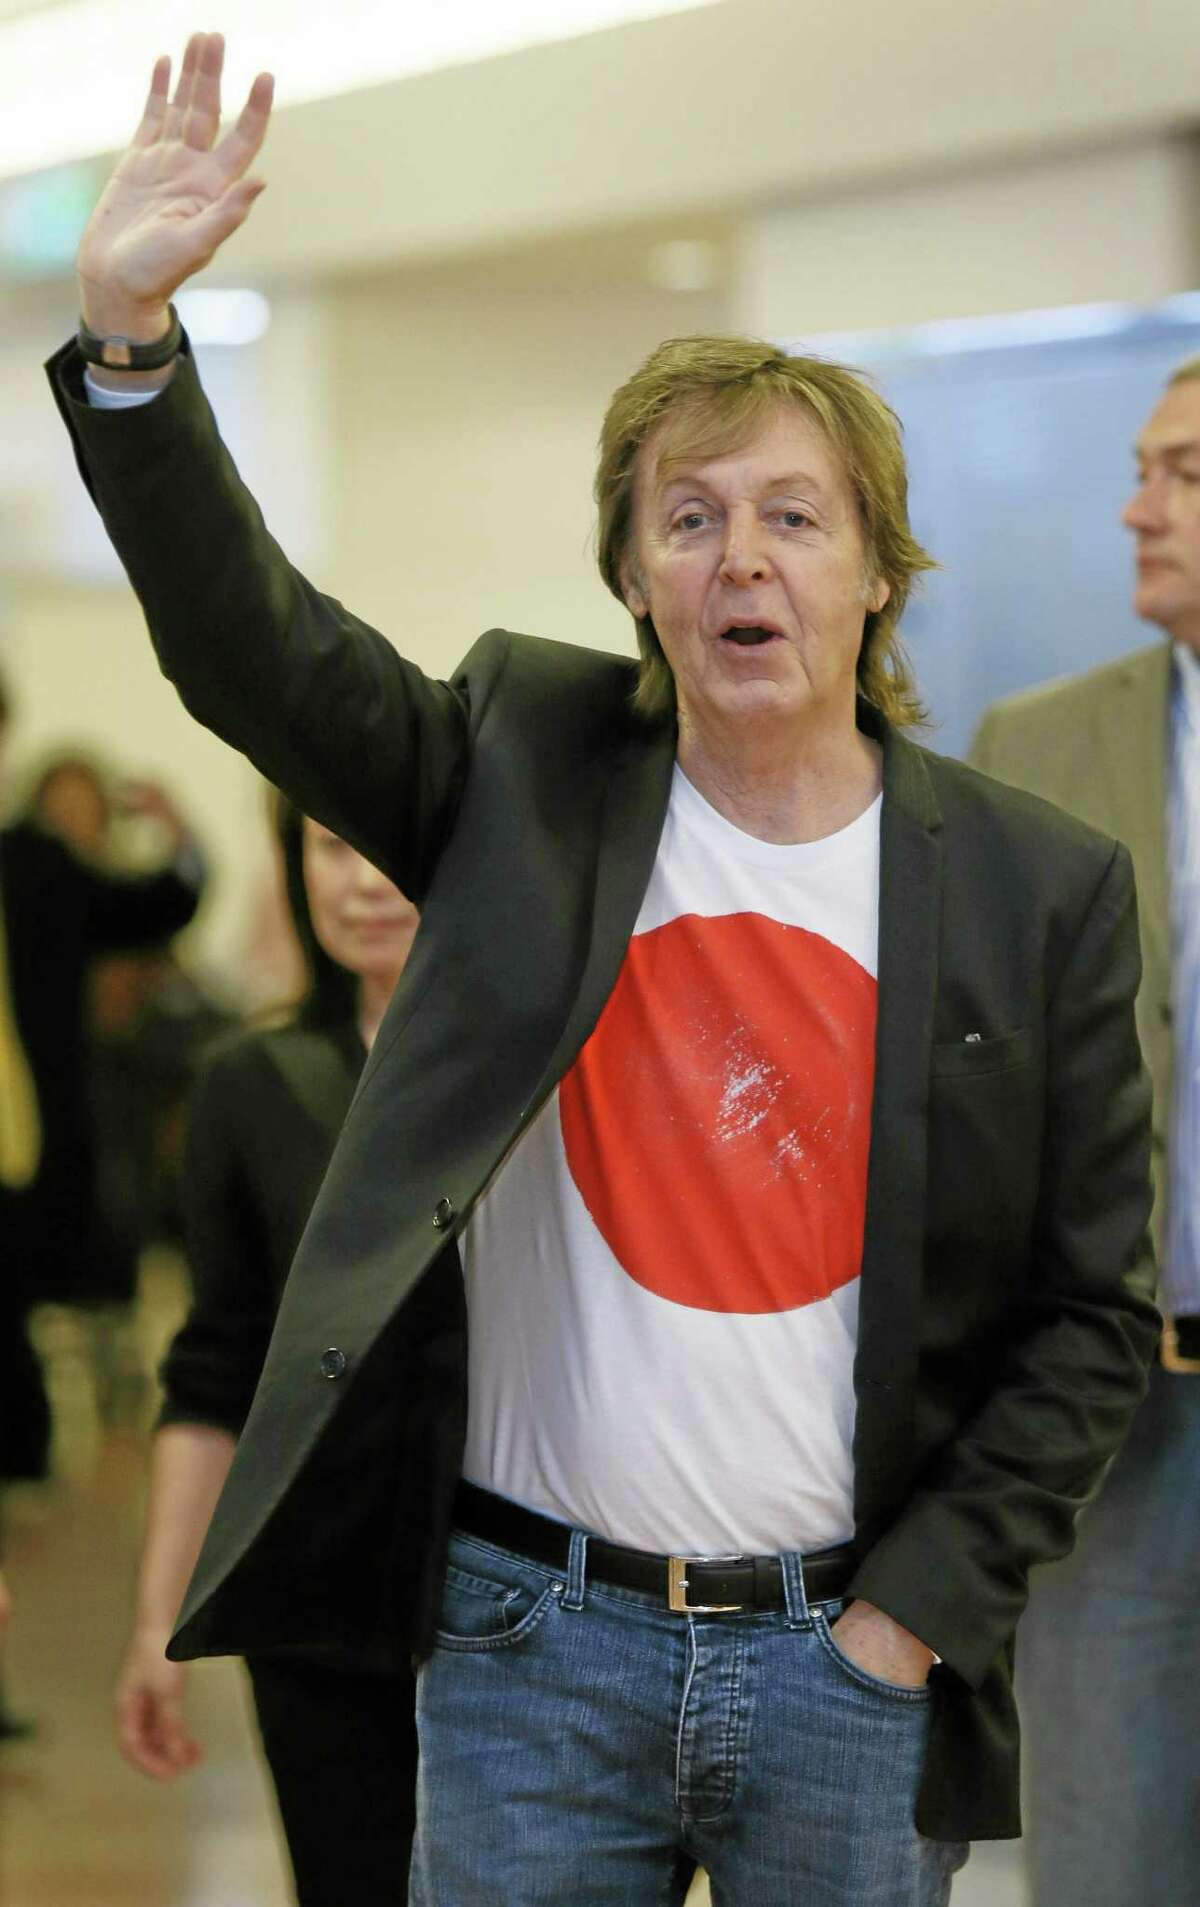 In this Thursday, May 15, 2014 photo, Paul McCartney waves upon arrival at Haneda international airport in Tokyo. (AP Photo/Kyodo News)